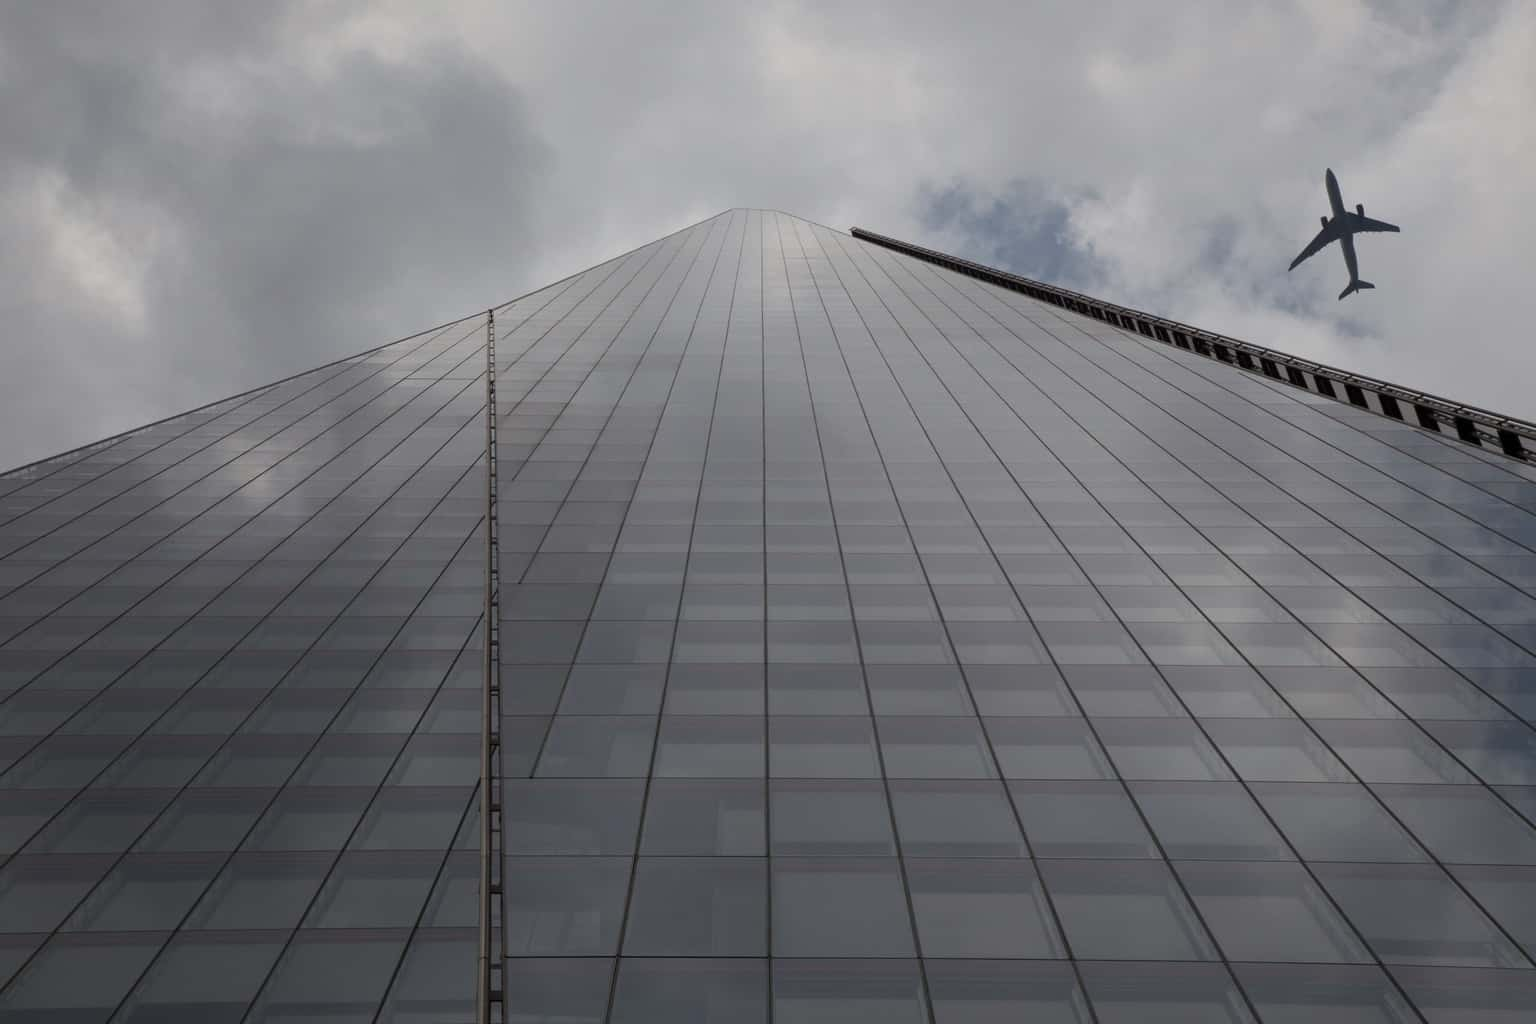 The Shard by architecture photographer Rick McEvoy